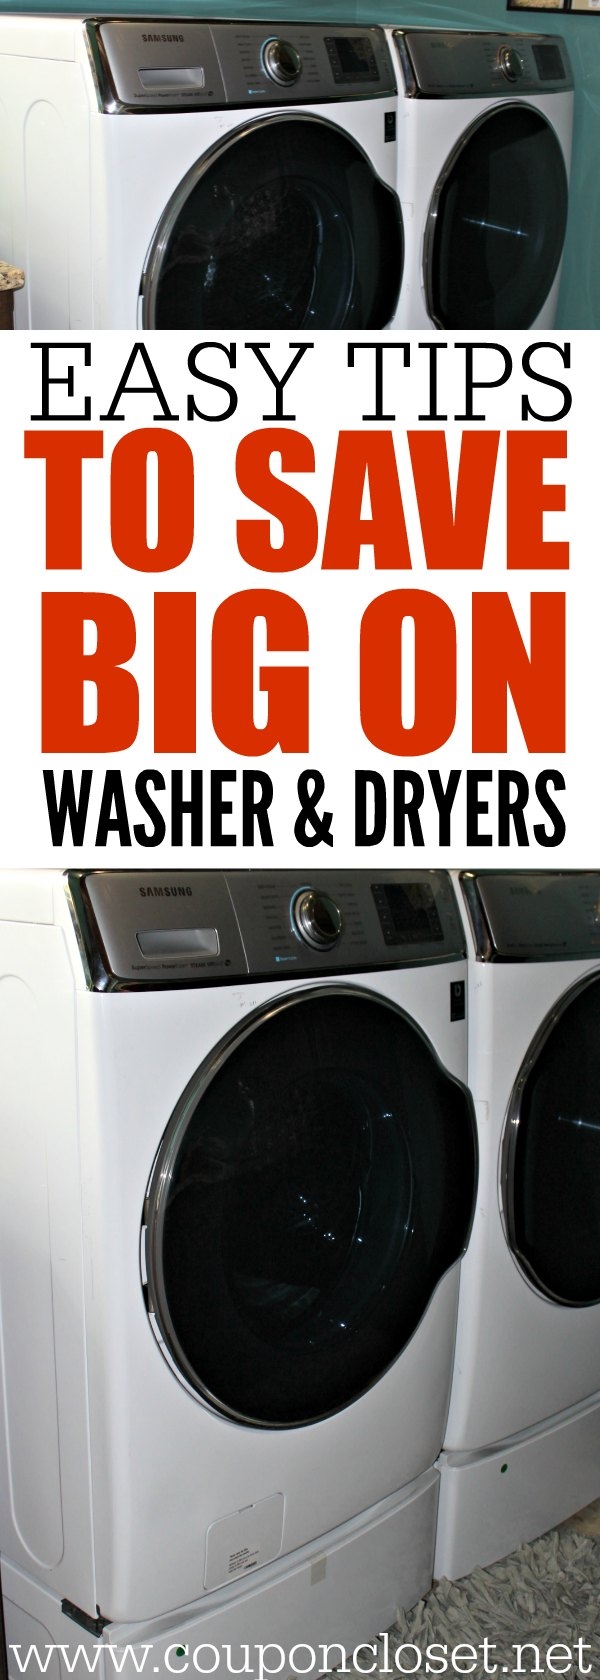 save-big-on-washer-and-dryer-sets